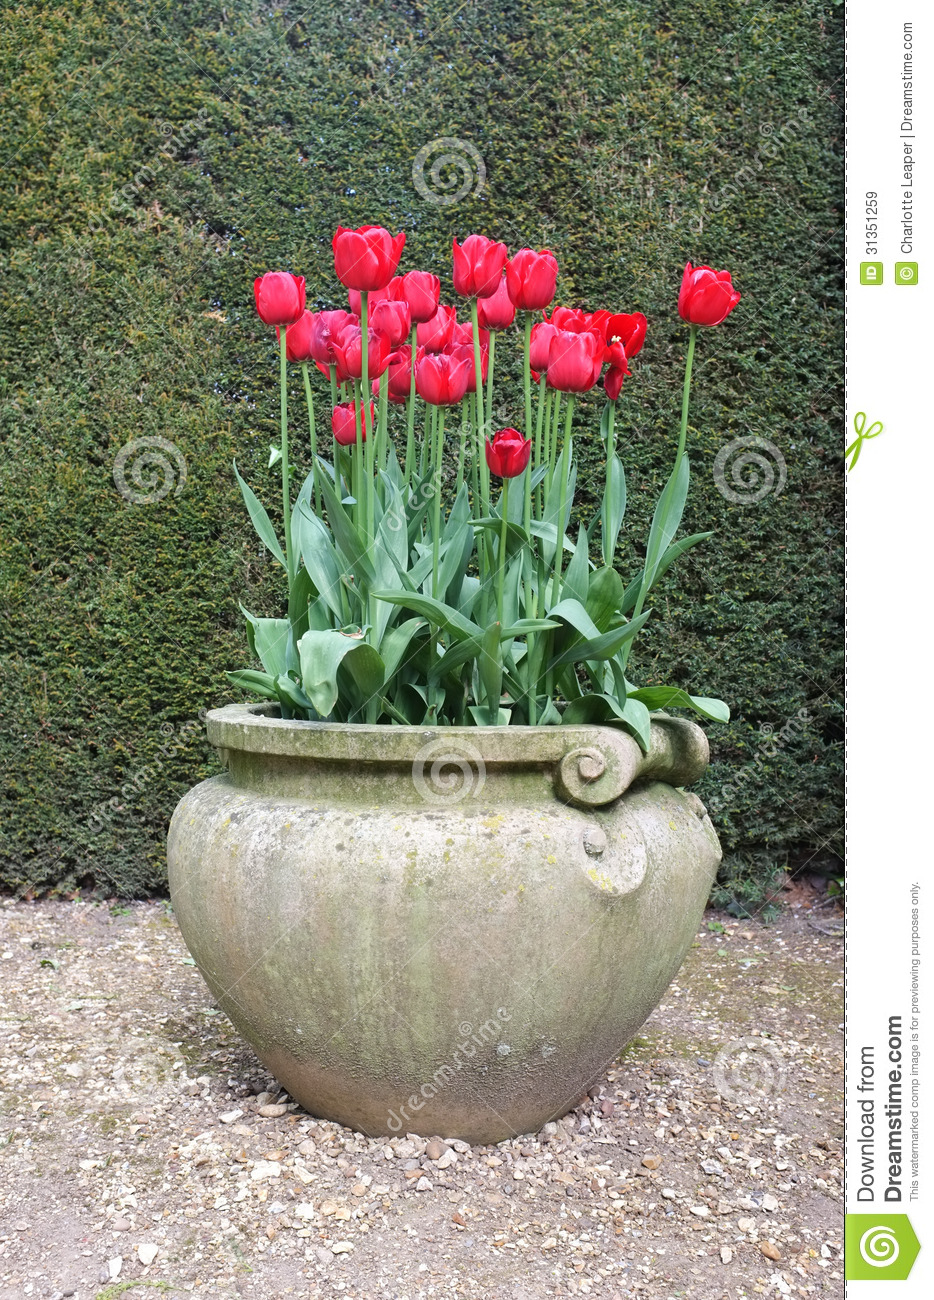 Red Tulip Flowers In Antique Vase Royalty Free Stock Images Image 31351259